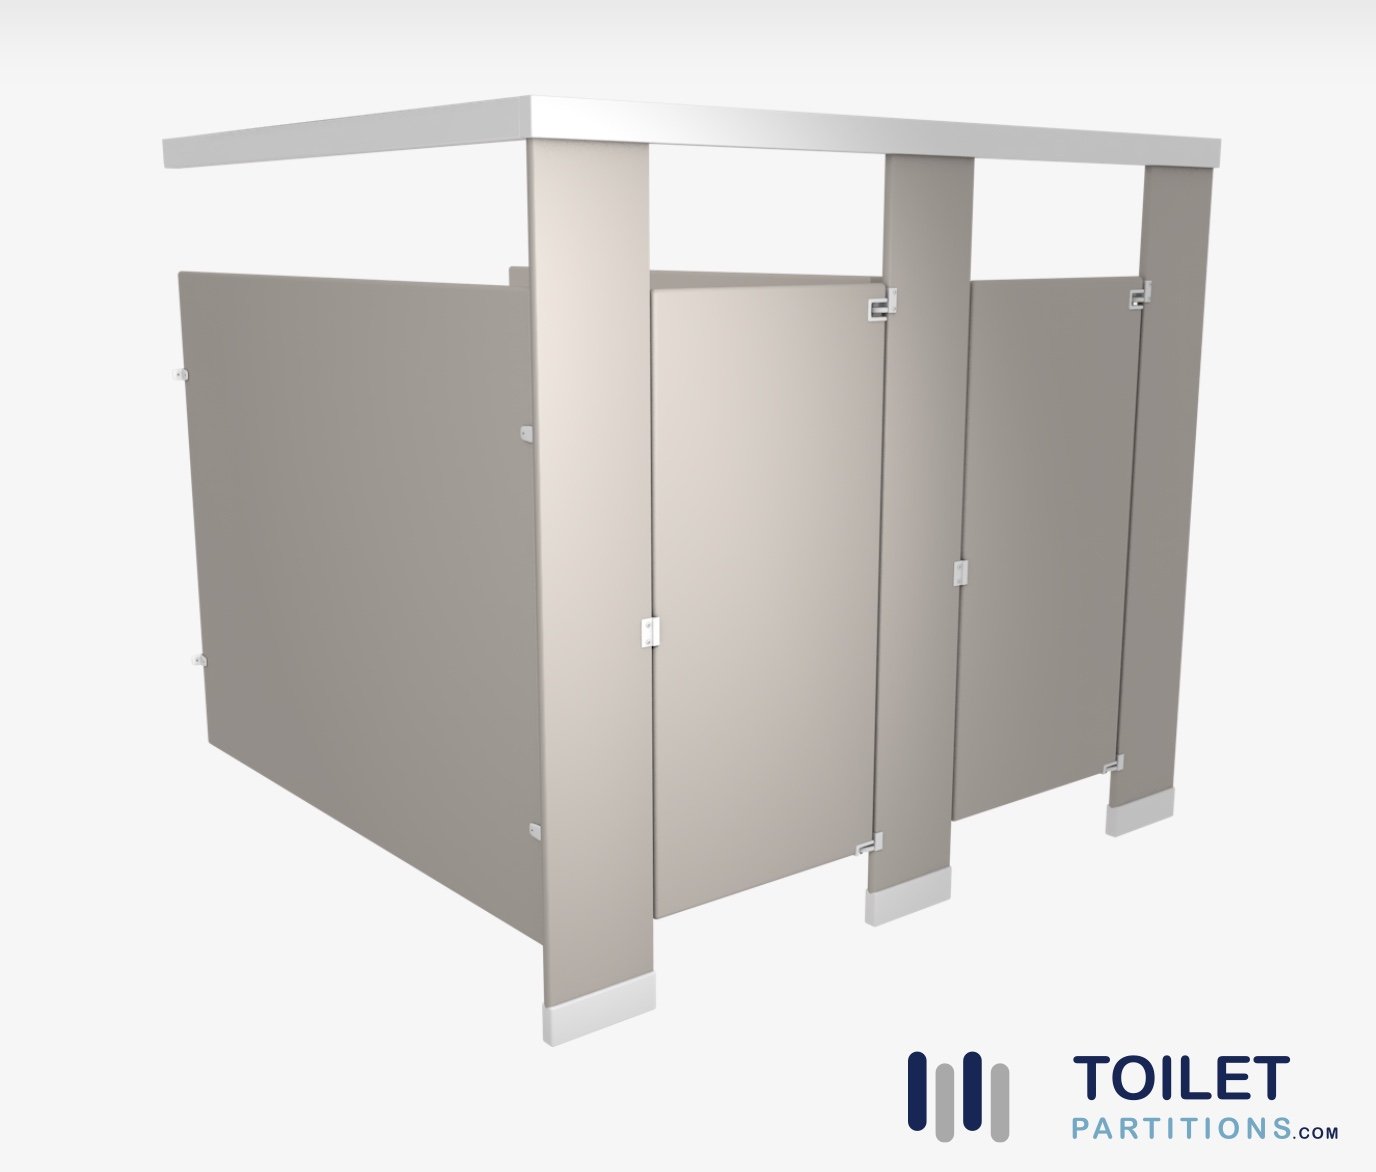 Bathroom Partitions Instant Pricing Free Shipping Toiletpartitions Com